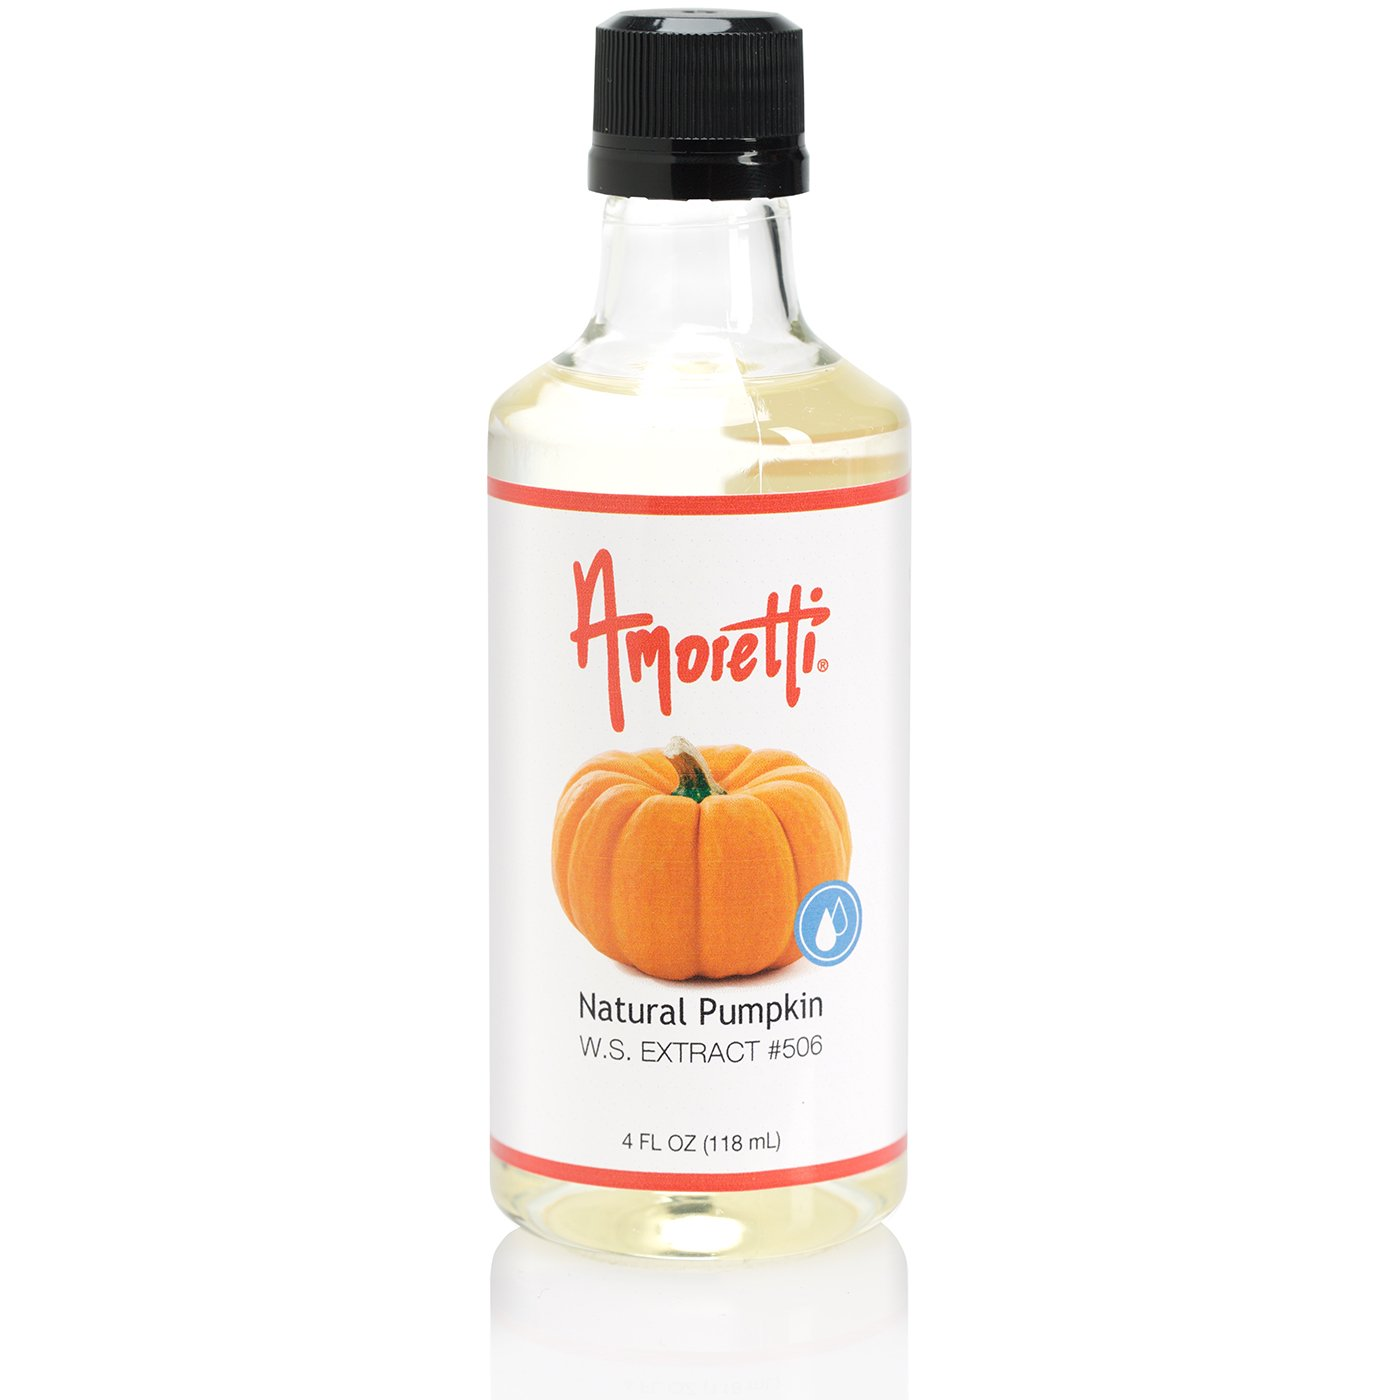 Amoretti Natural Pumpkin Extract W.S.